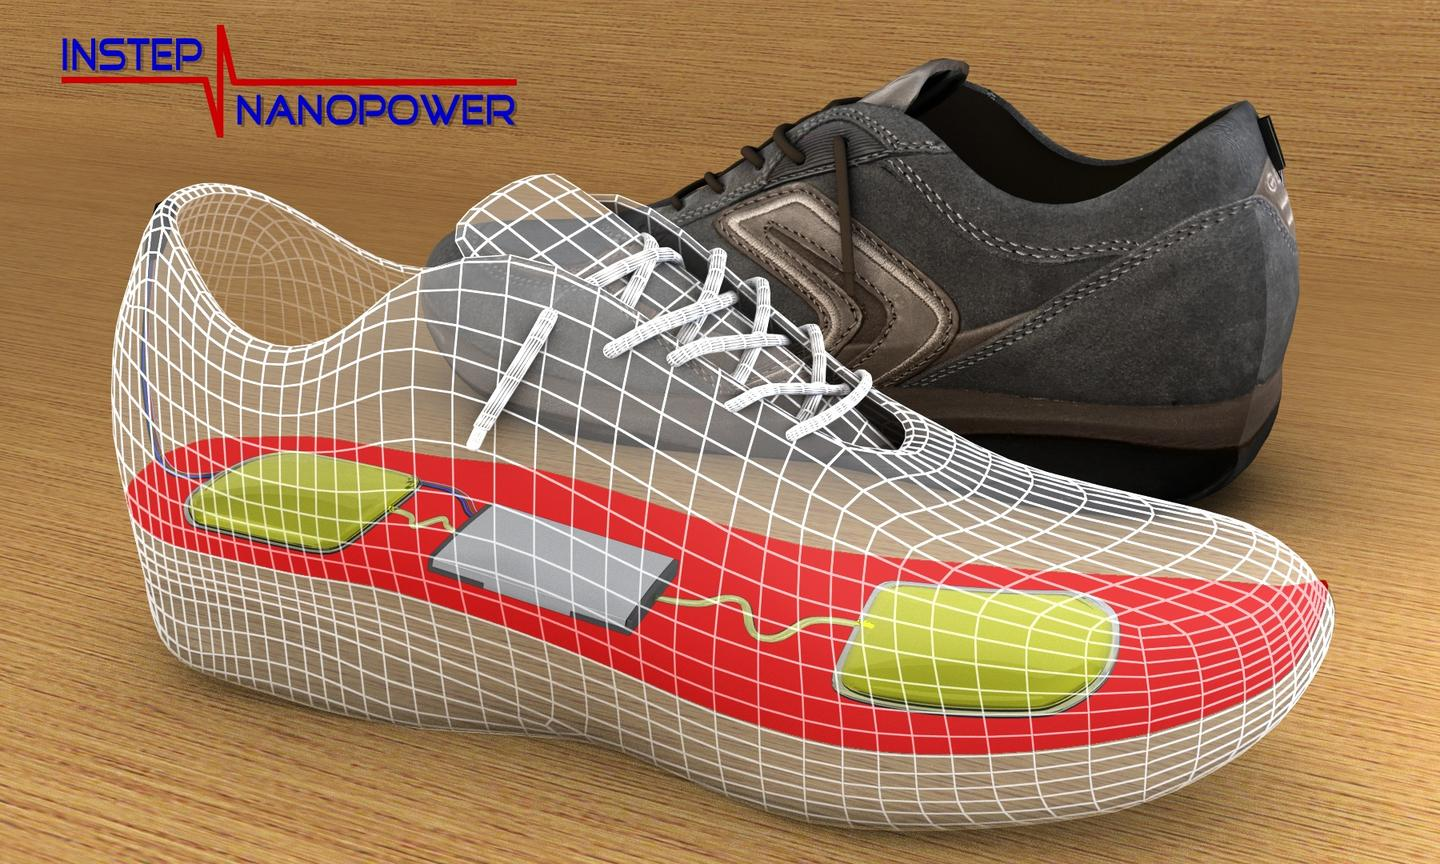 A new in-shoe device is designed to harvest the energy that is created by walking, and store it for use in mobile electronic devices